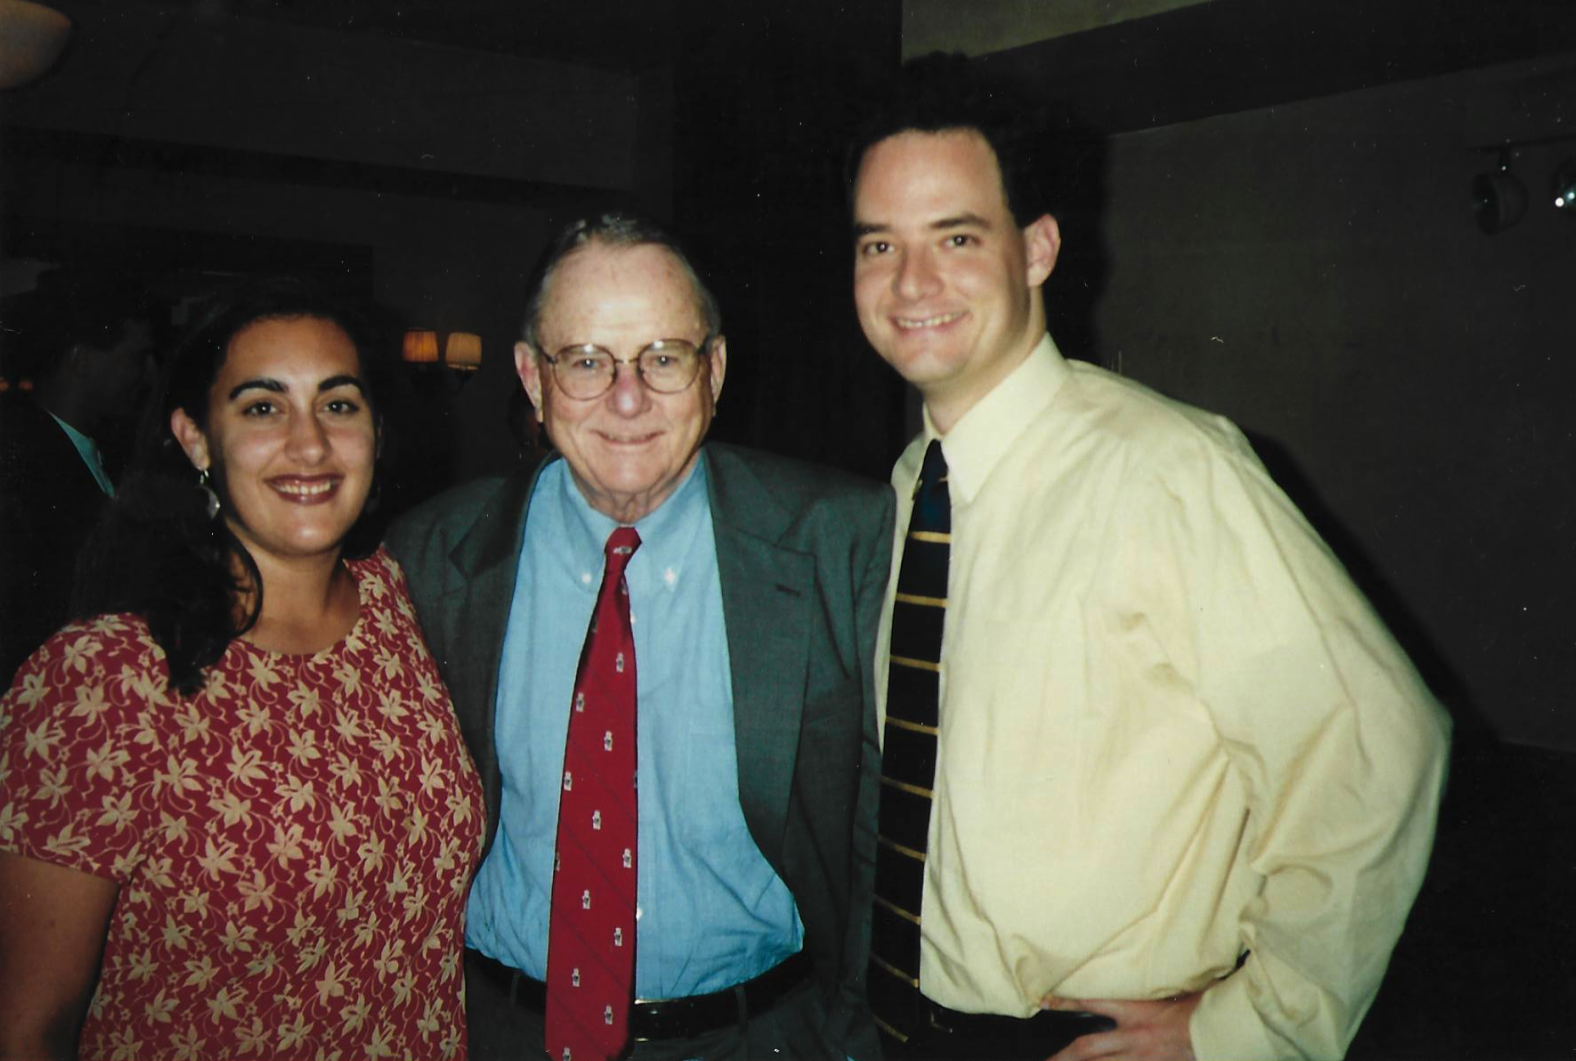 Maya poses with the Honorable Richard D. Cudahy -